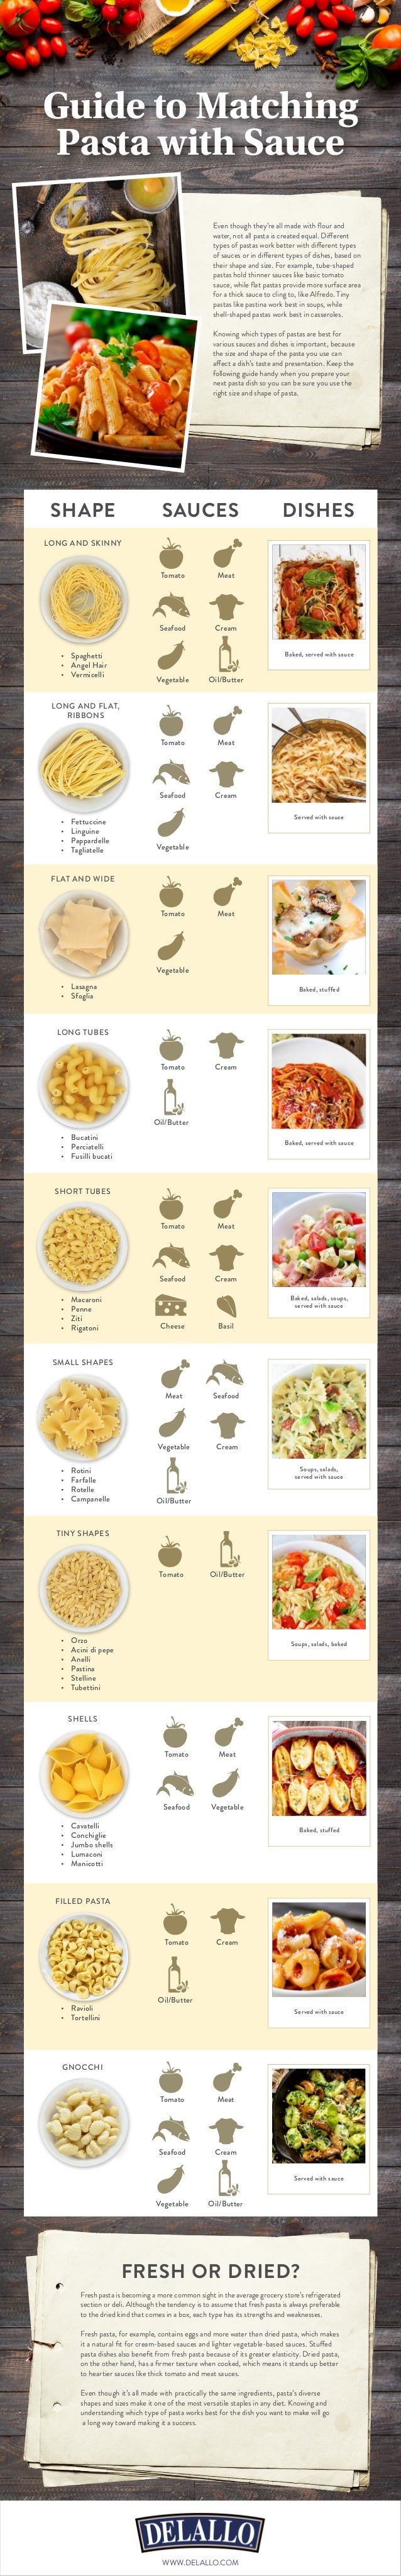 Guide to Matching Pasta with Sauce Even though they're all made with flour and water, not all pasta is created equal. Diff...